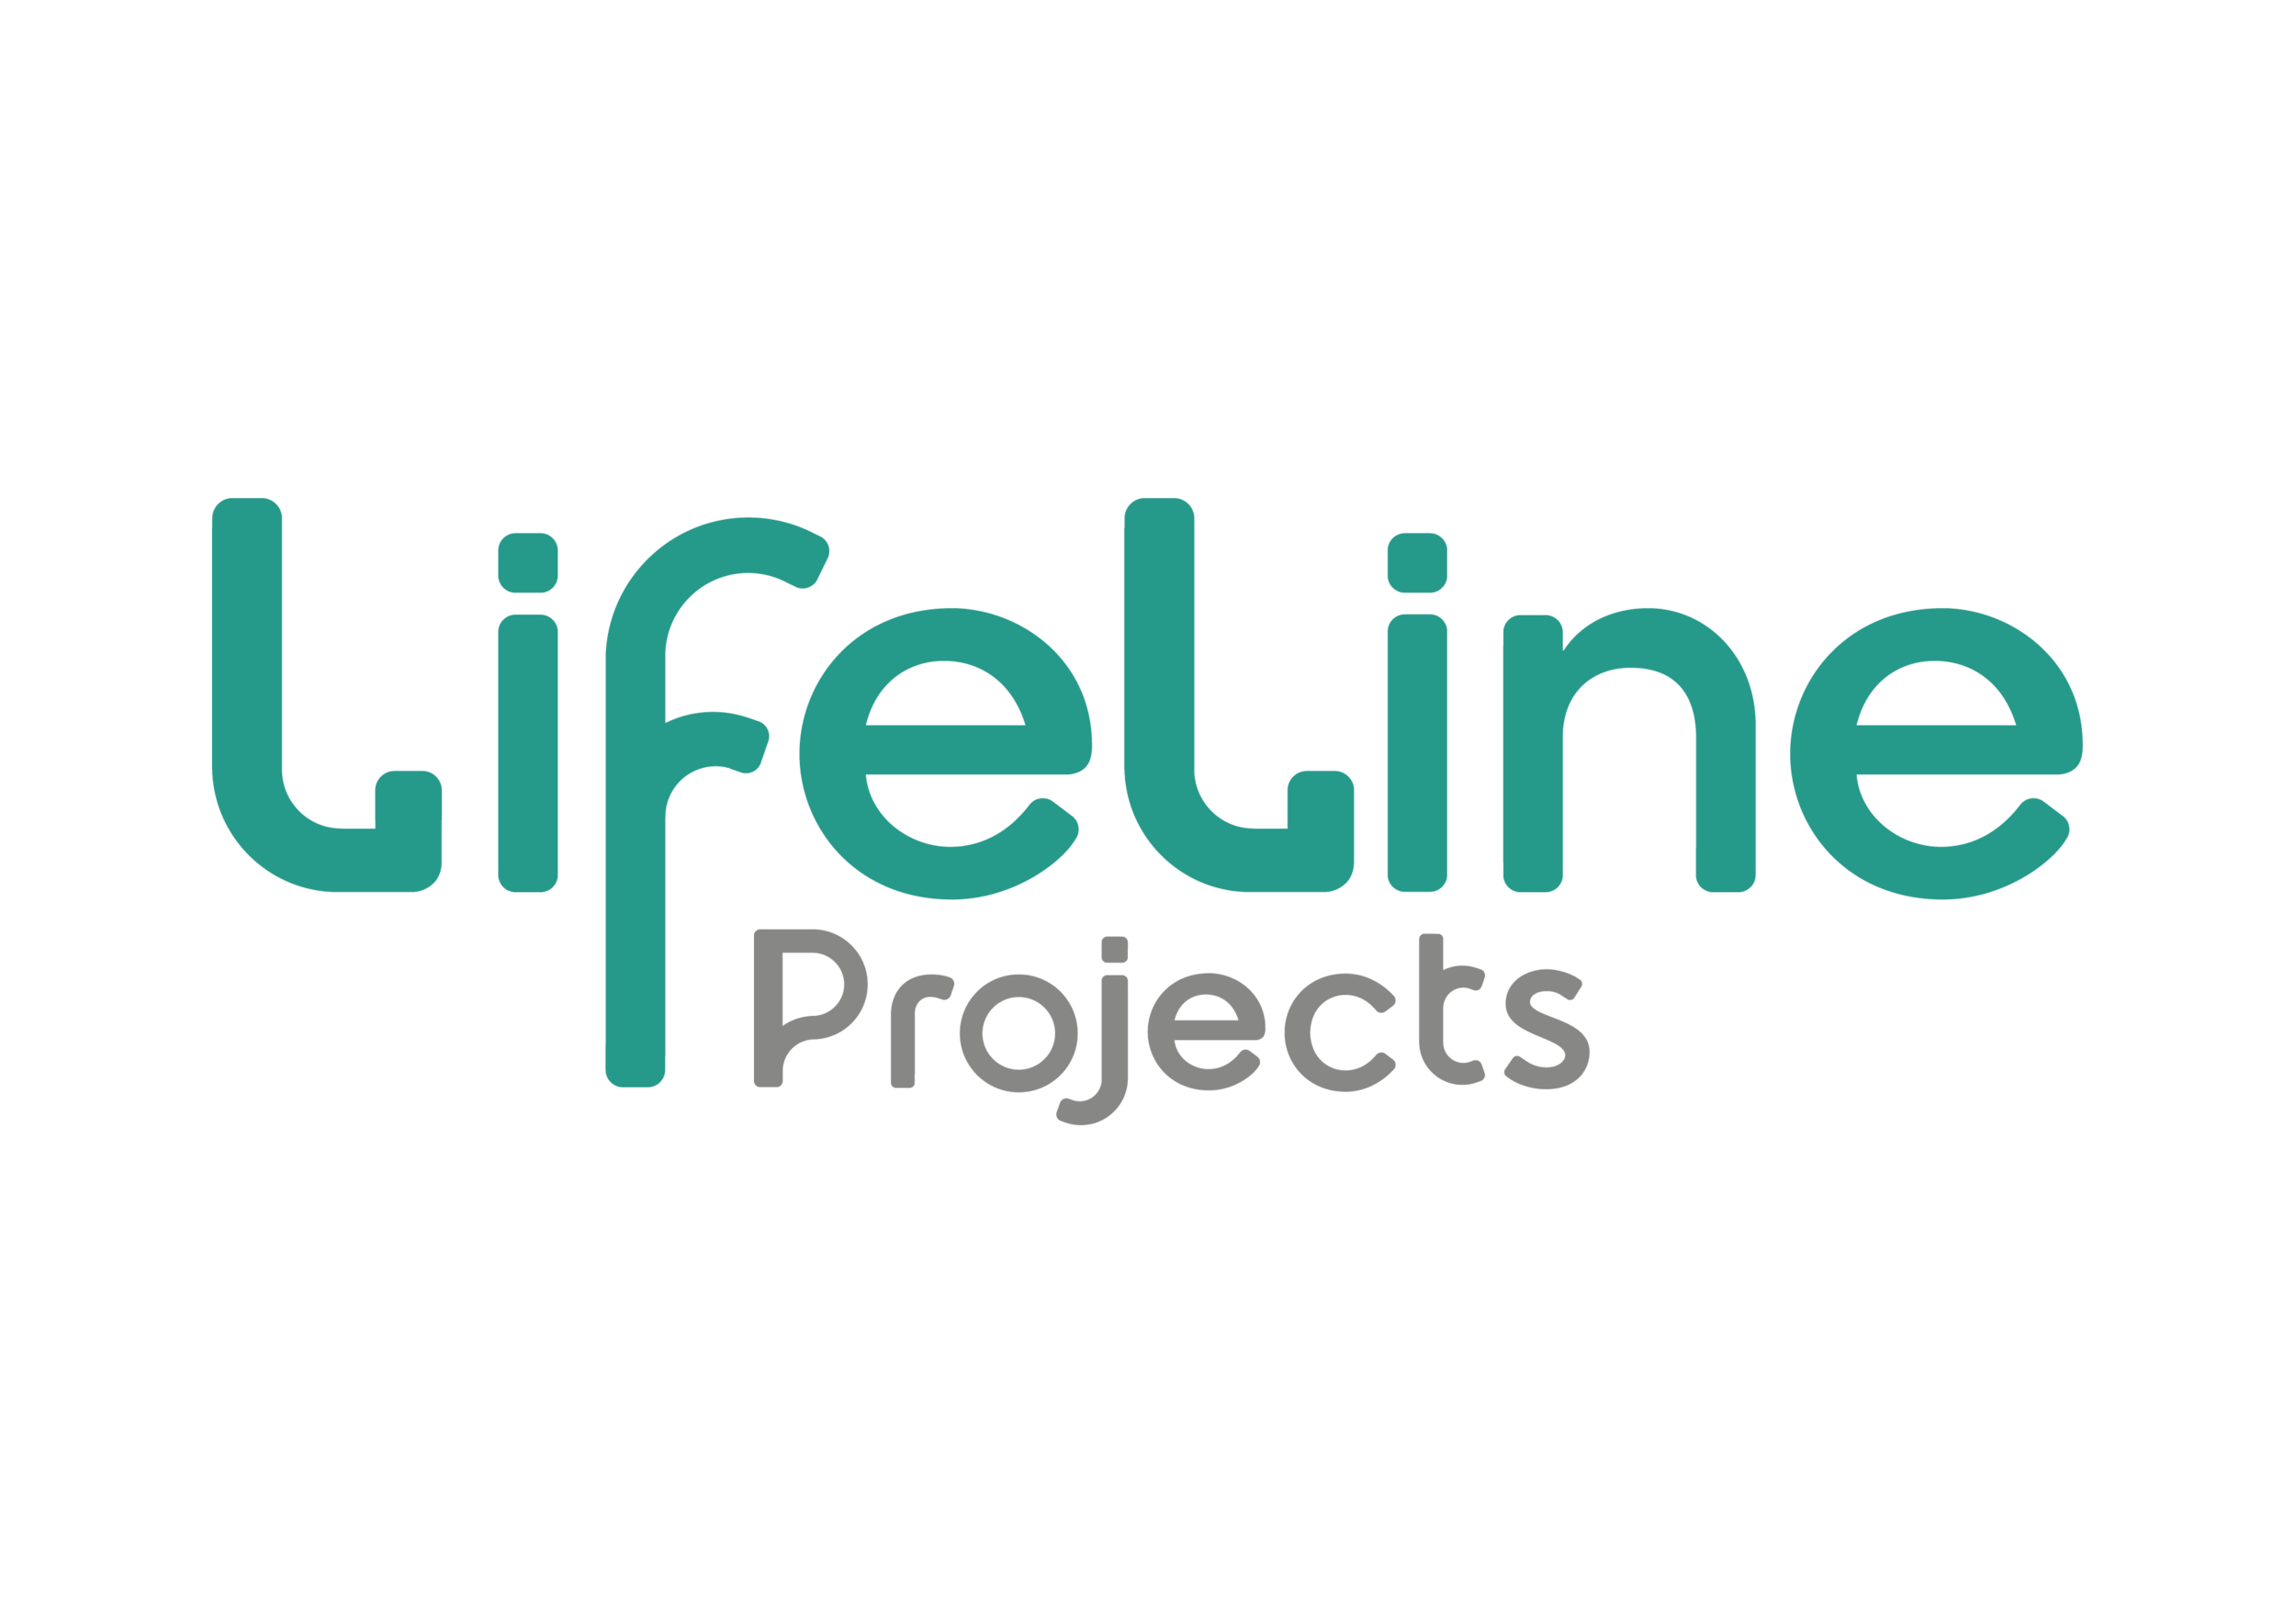 LifeLine_Projects_CMYK.png